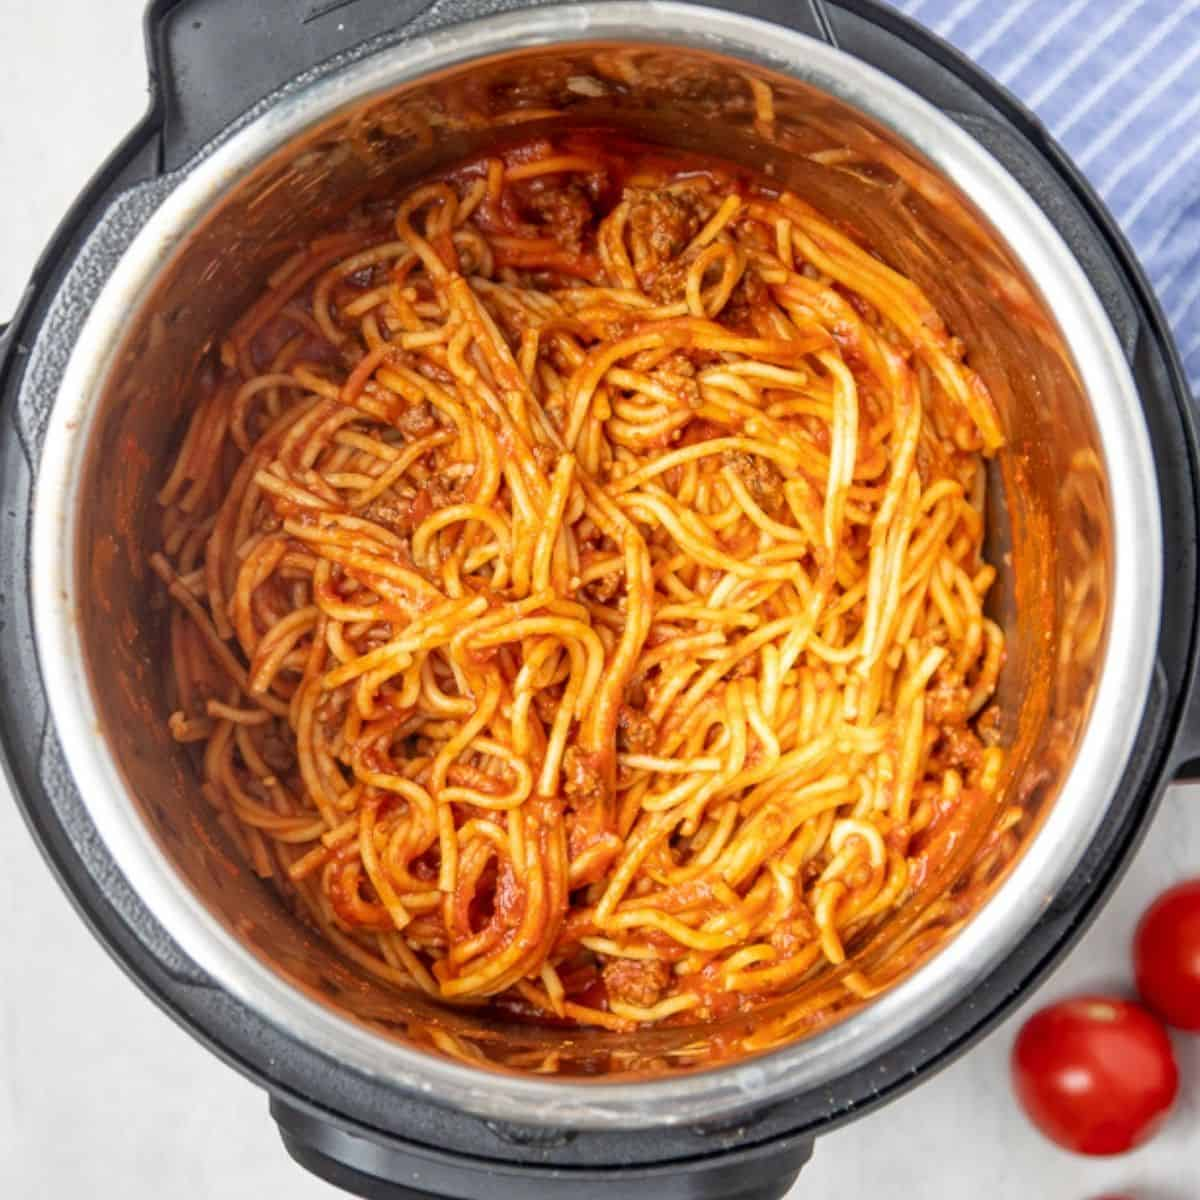 Spaghetti tossed together with meat sauce in instant pot.